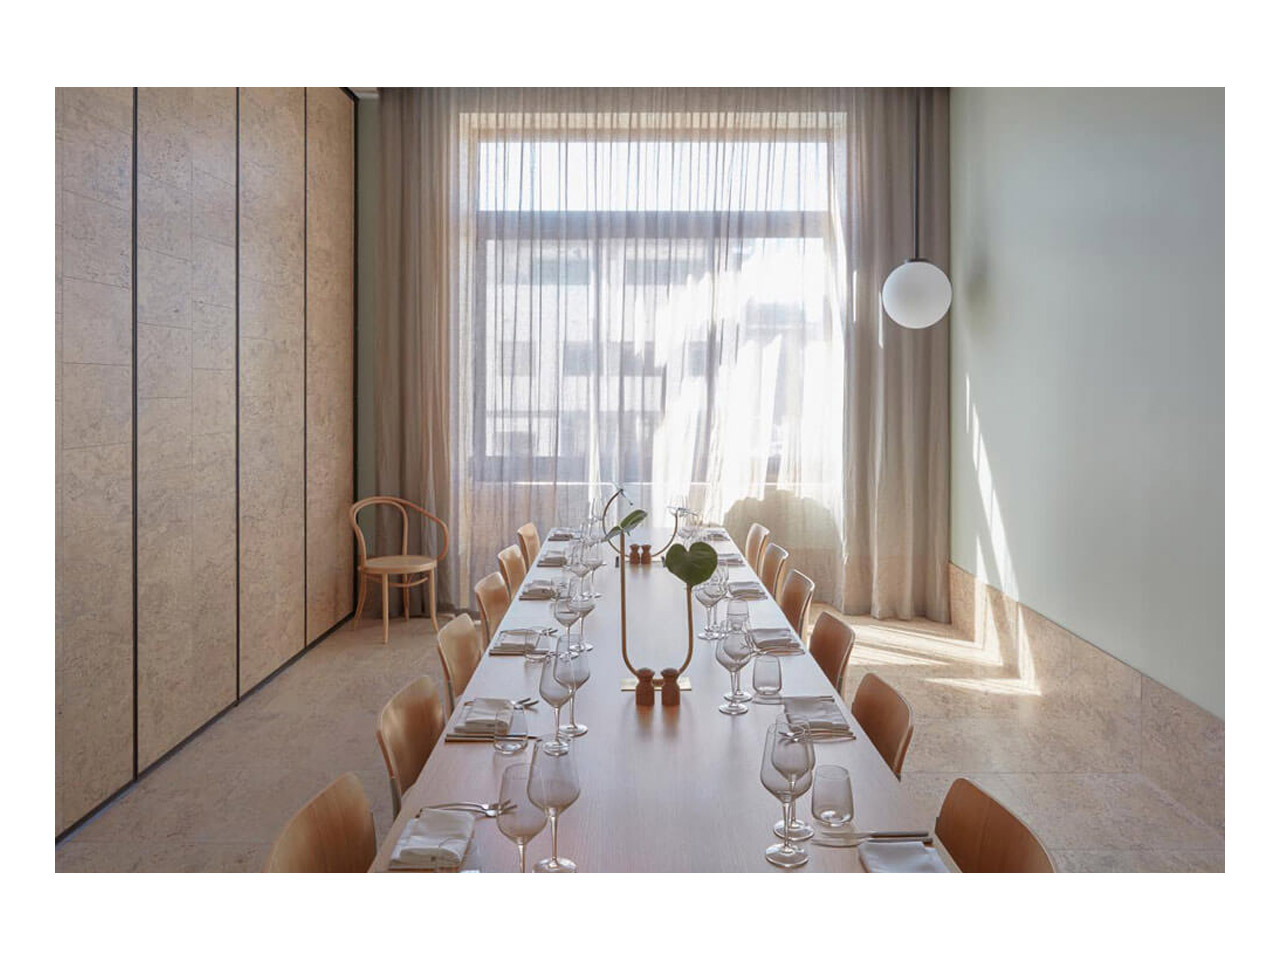 Meeting room featuring long table facing windows